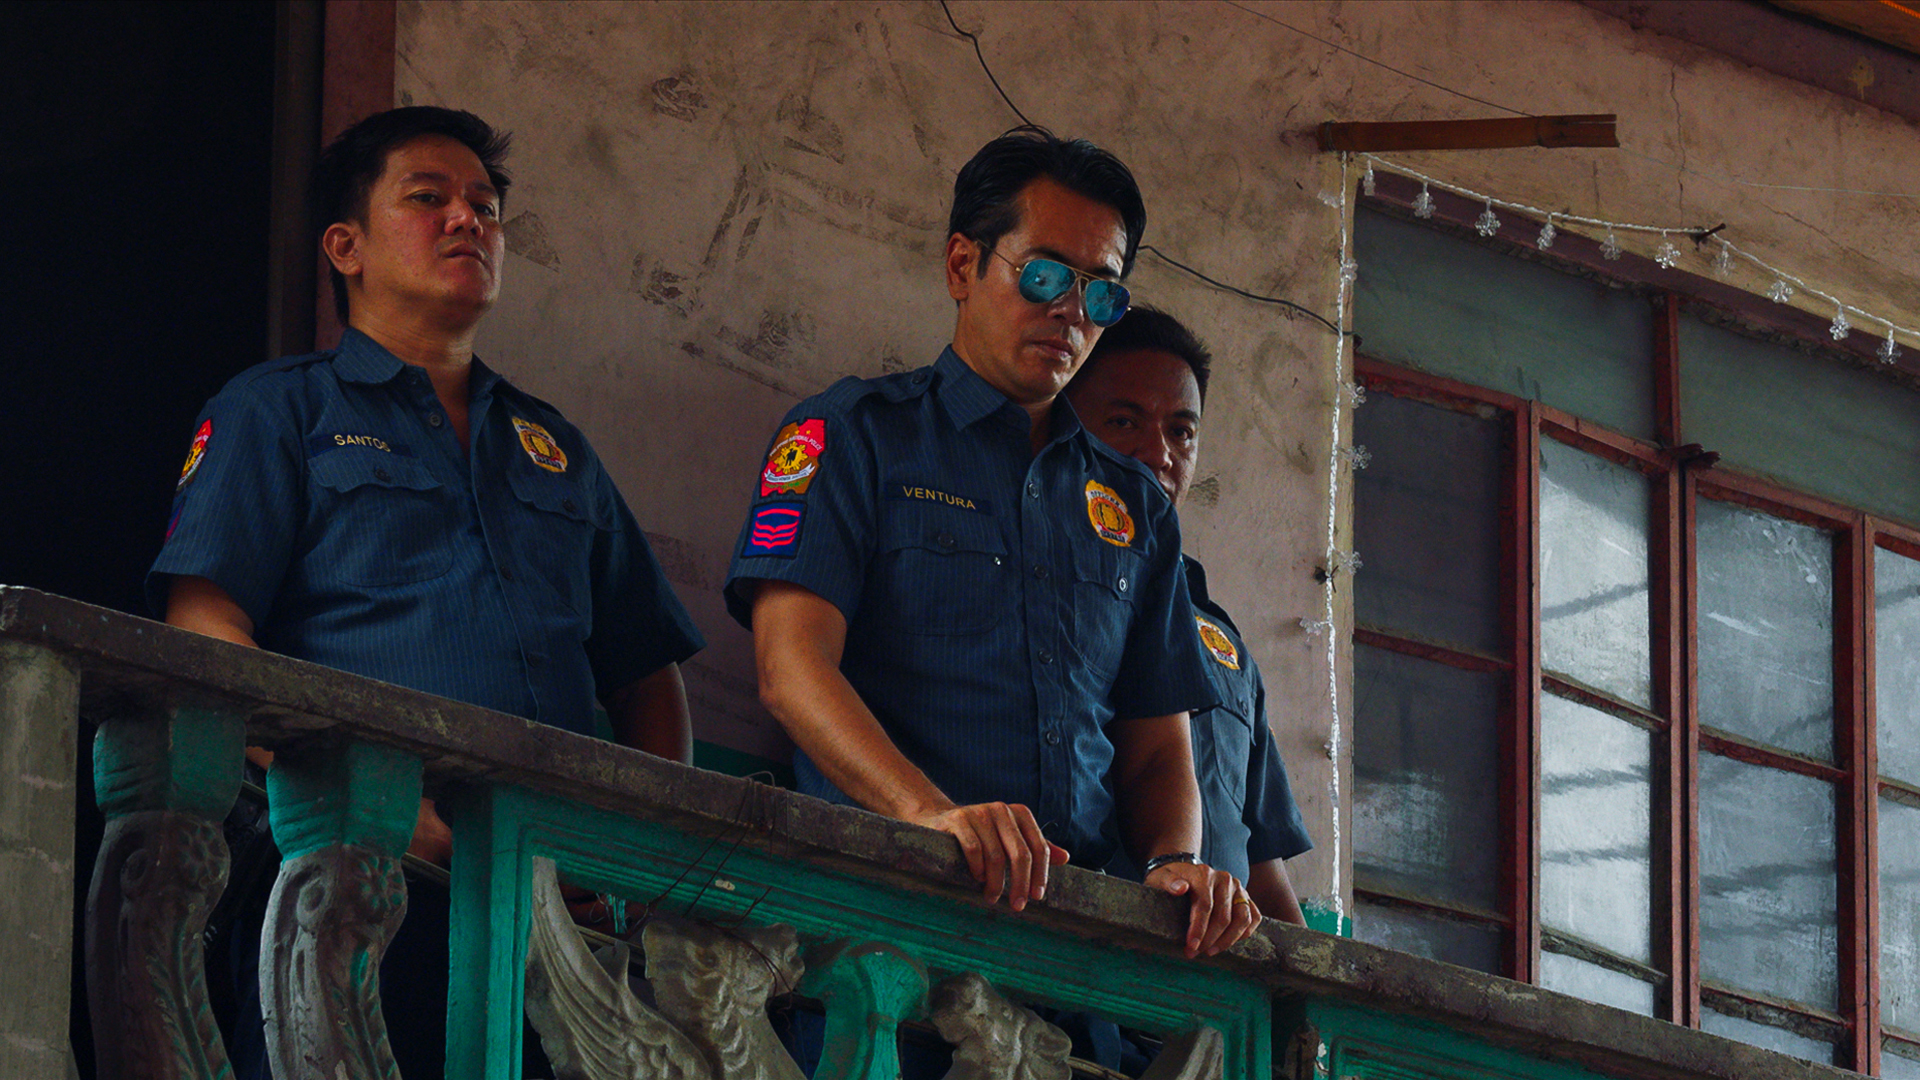 """Police action film """"Watch List"""" to play North American theaters late August"""